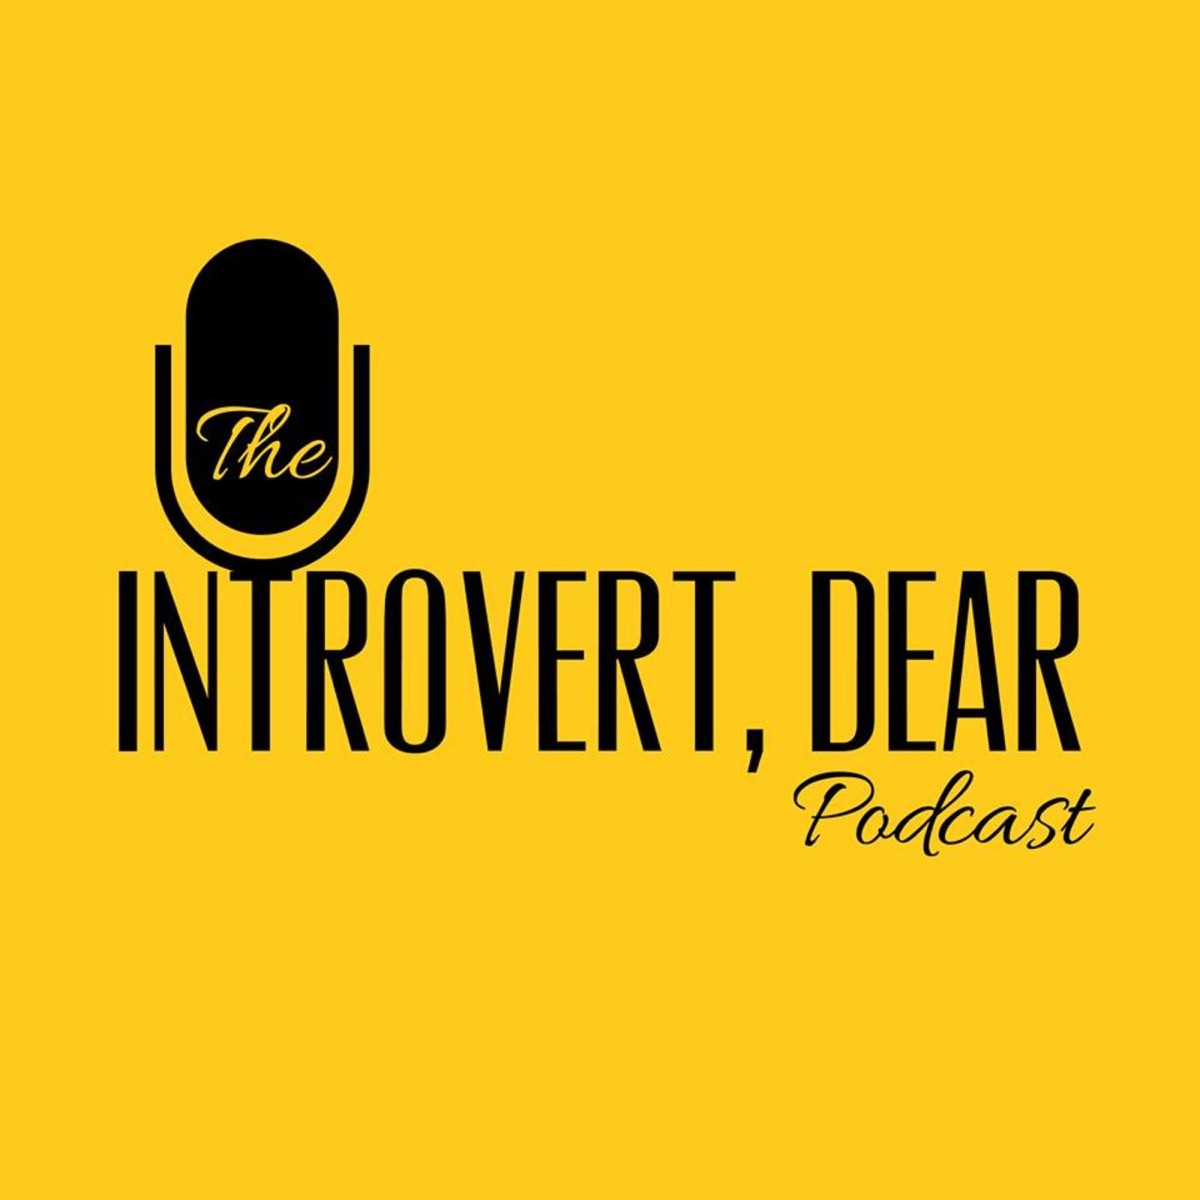 Episode #04: What You Need to Know About Your Introvert Personality